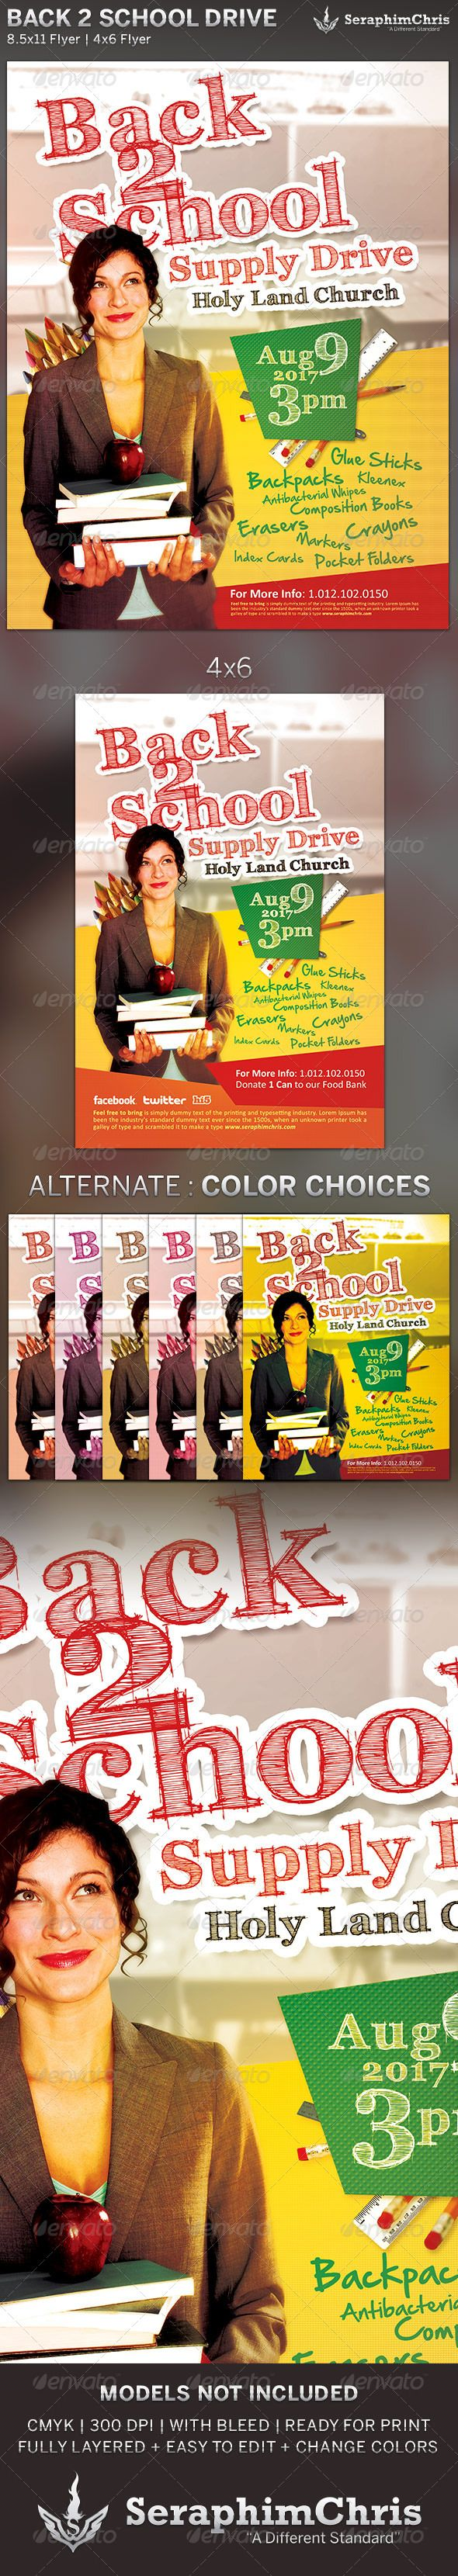 best images about reference flyer template back to school drive church flyer template